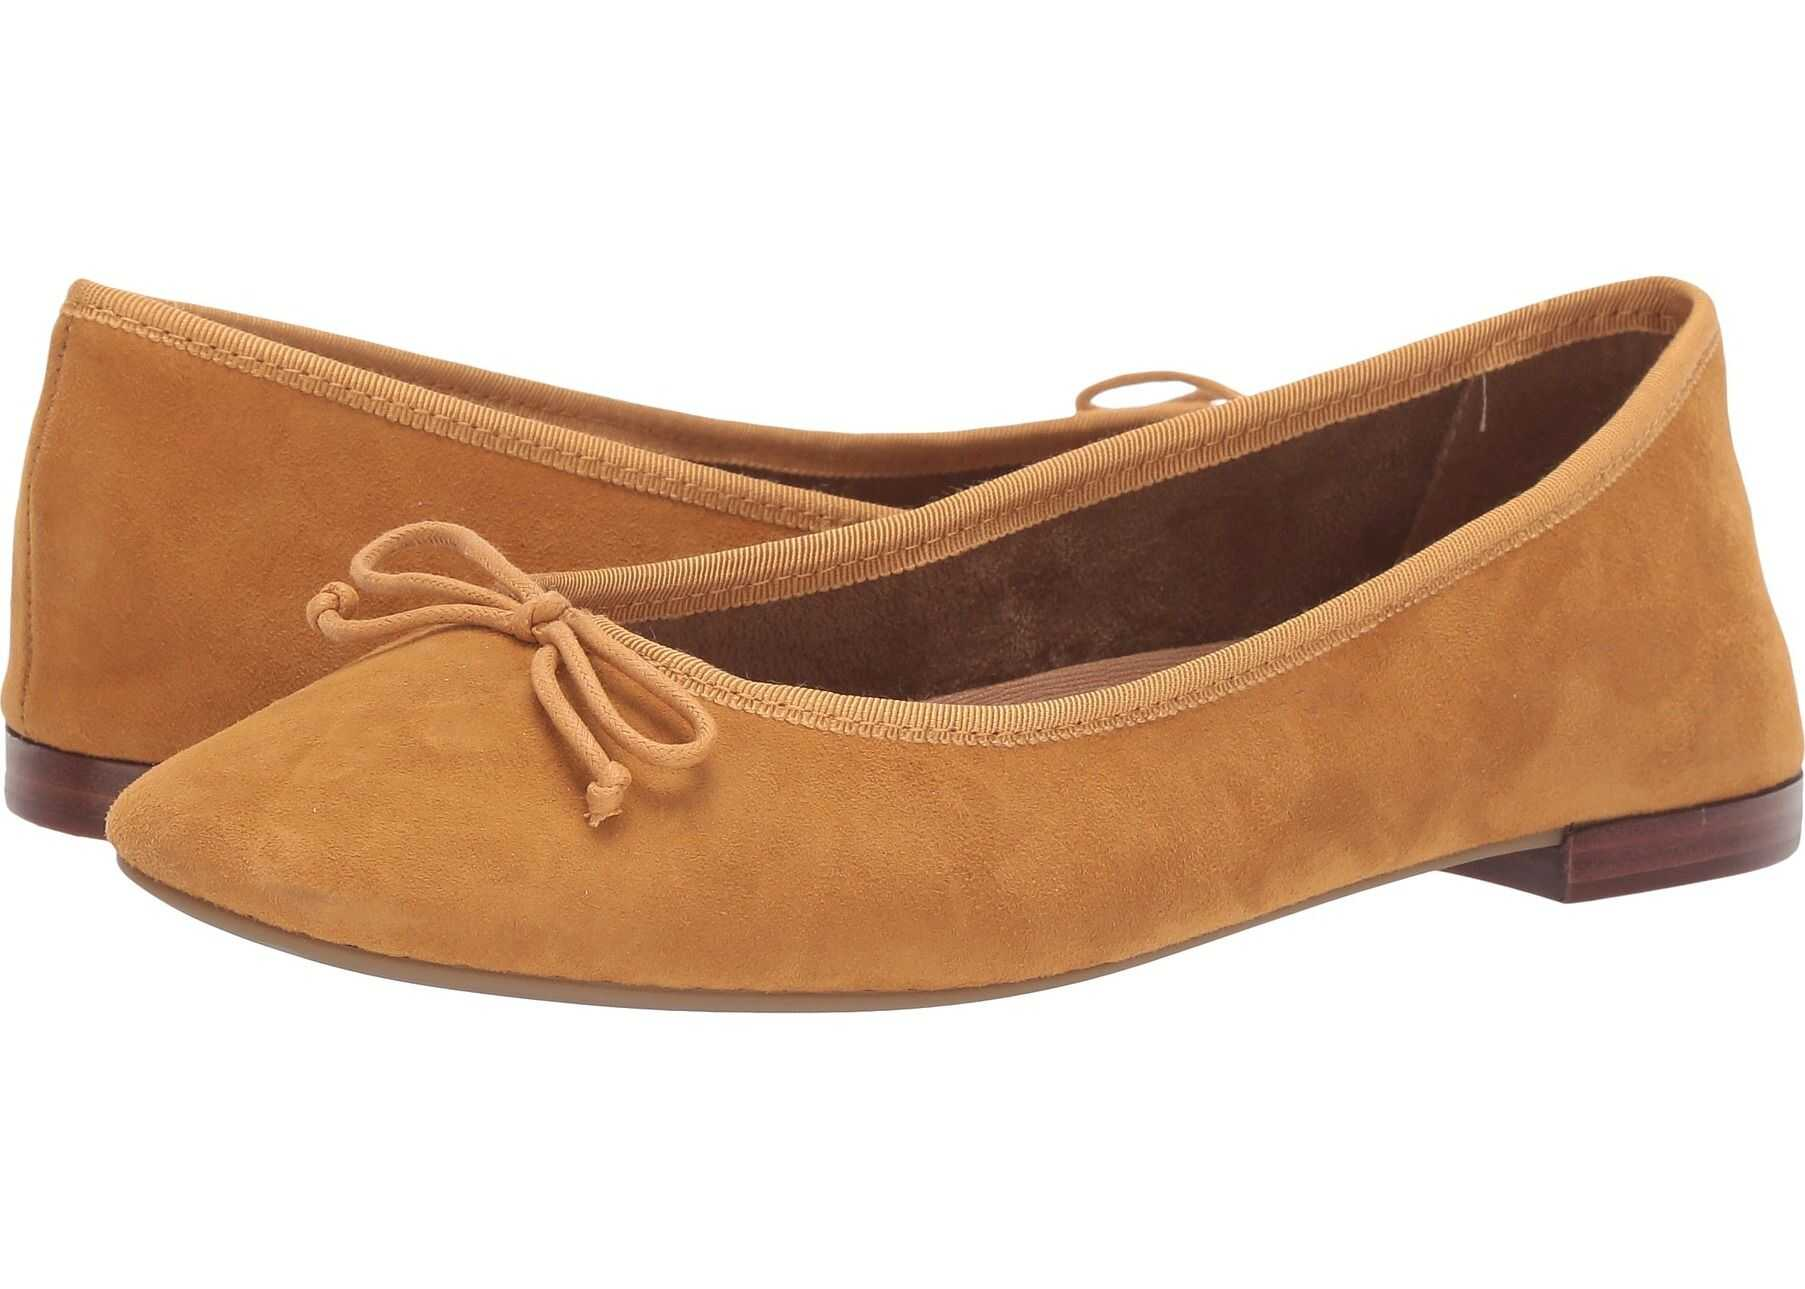 Aerosoles Martha Stewart Homerun Yellow Suede